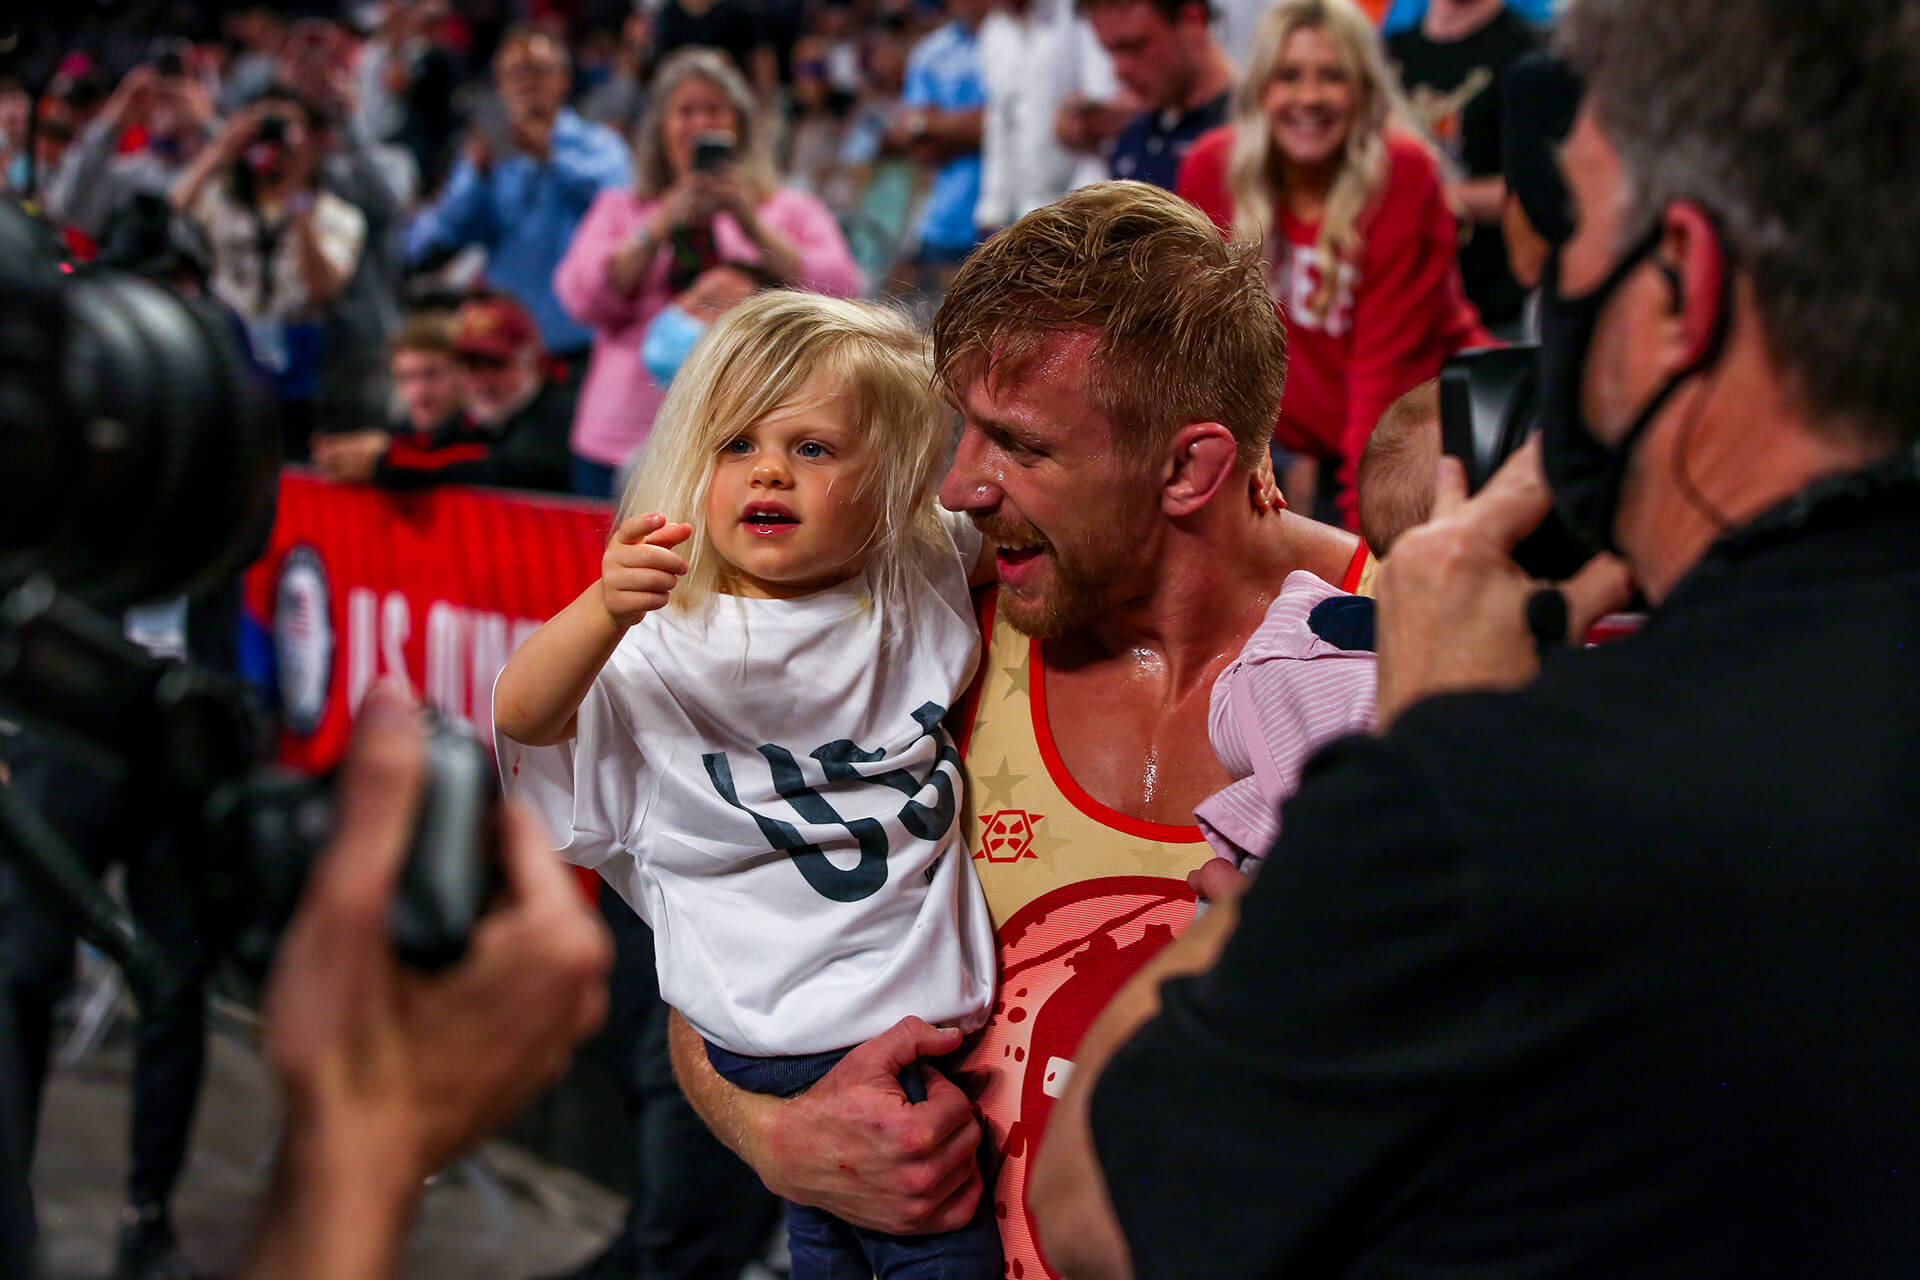 Kyle holding his daughter